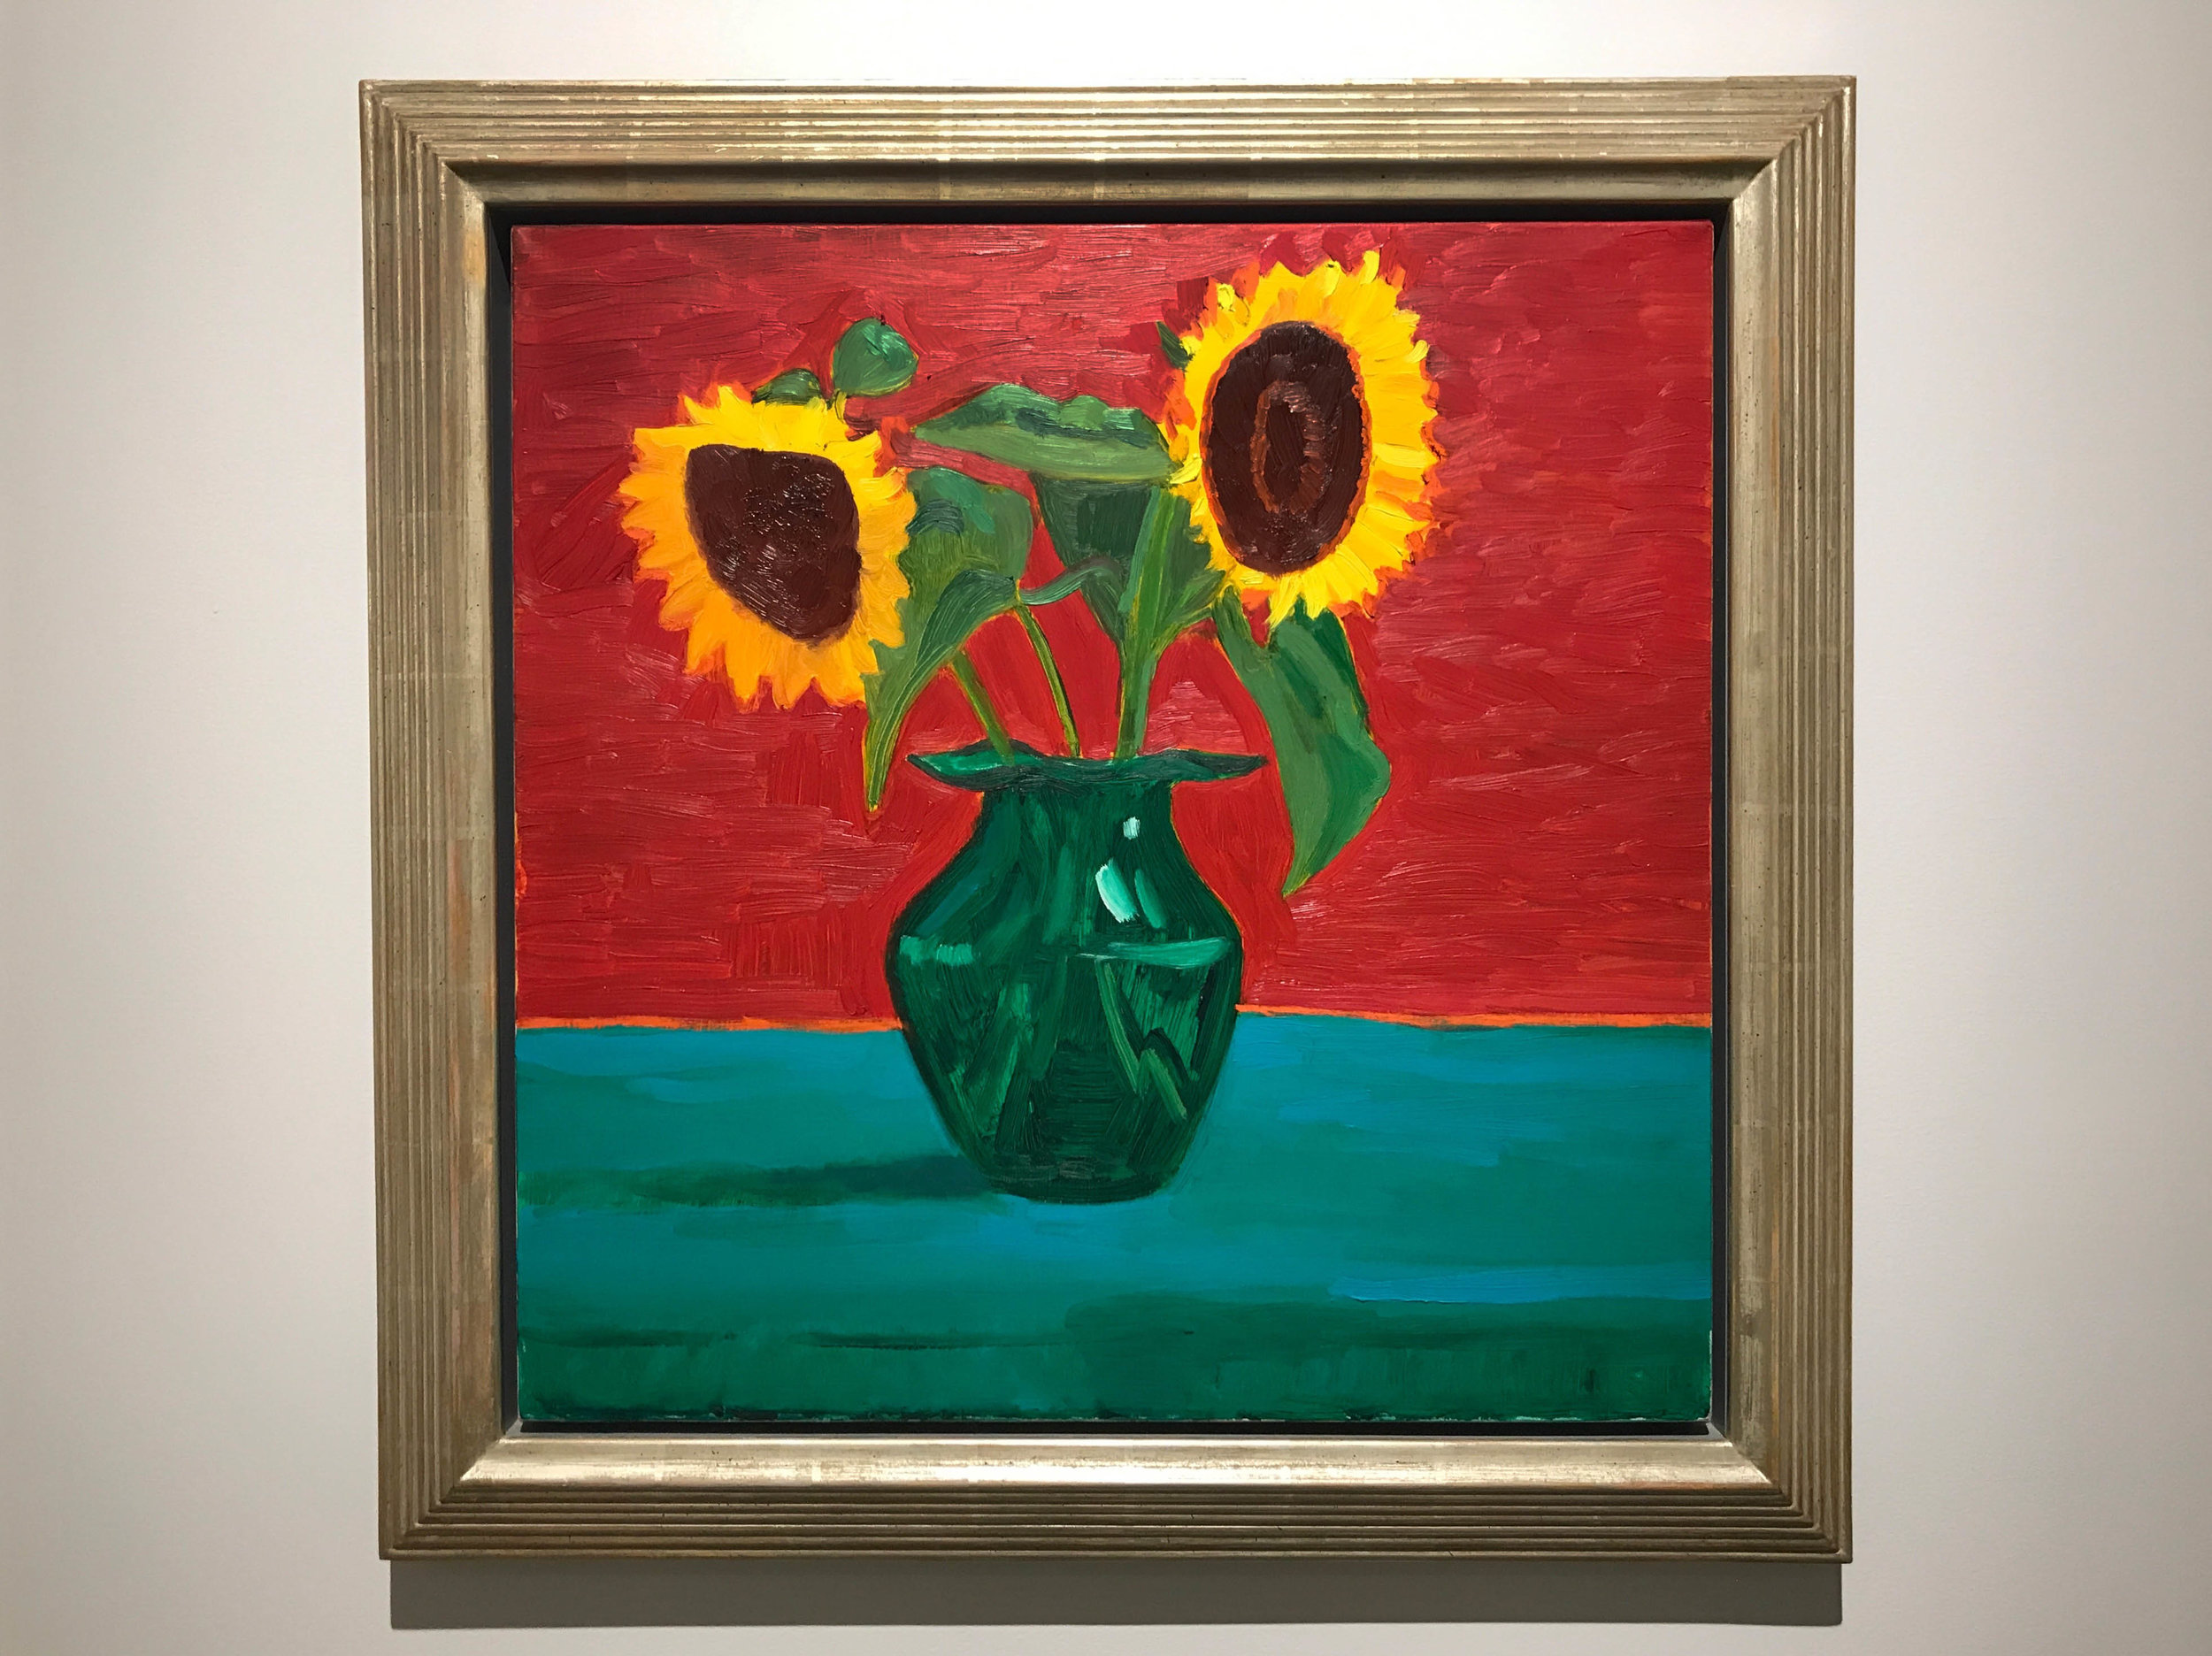 David Hockney ,  Two Sunflowers in Green Glass Vase , 1996, oil on canvas, 24 x 24 inches